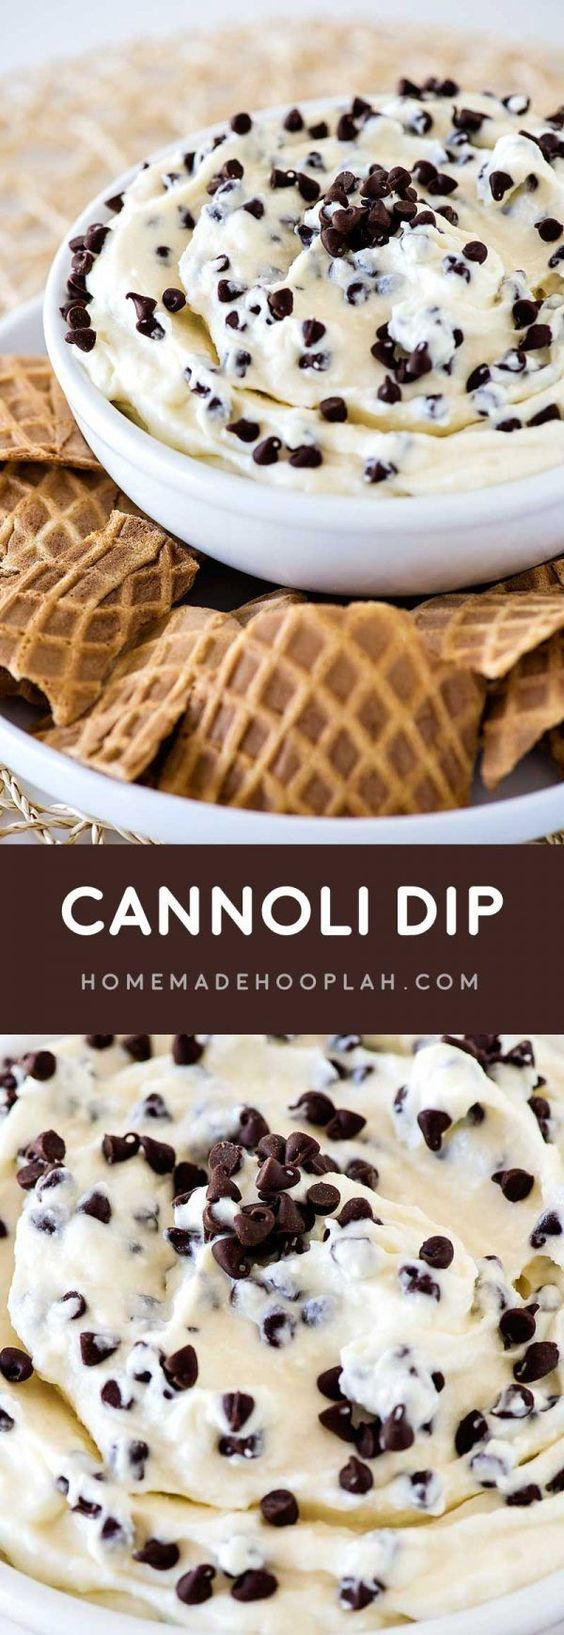 Cannoli Dip! An easy cannoli dip (that doesn't taste like cream cheese!) mixed with delicious mini chocolate chips and served with broken waffle cones for dipping. | HomemadeHooplah.com